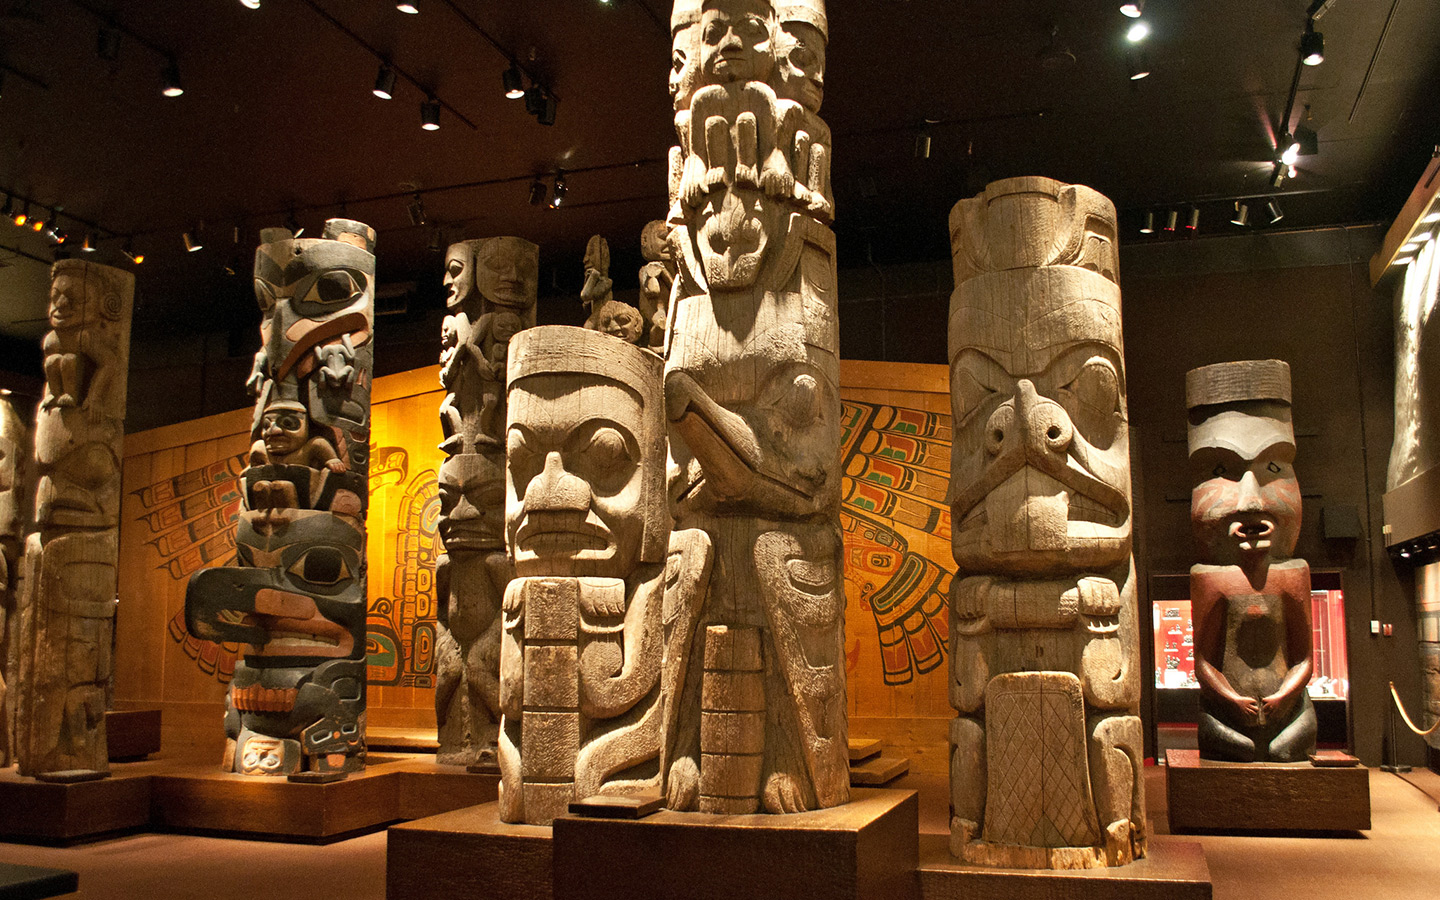 Totem poles in the Royal BC Museum